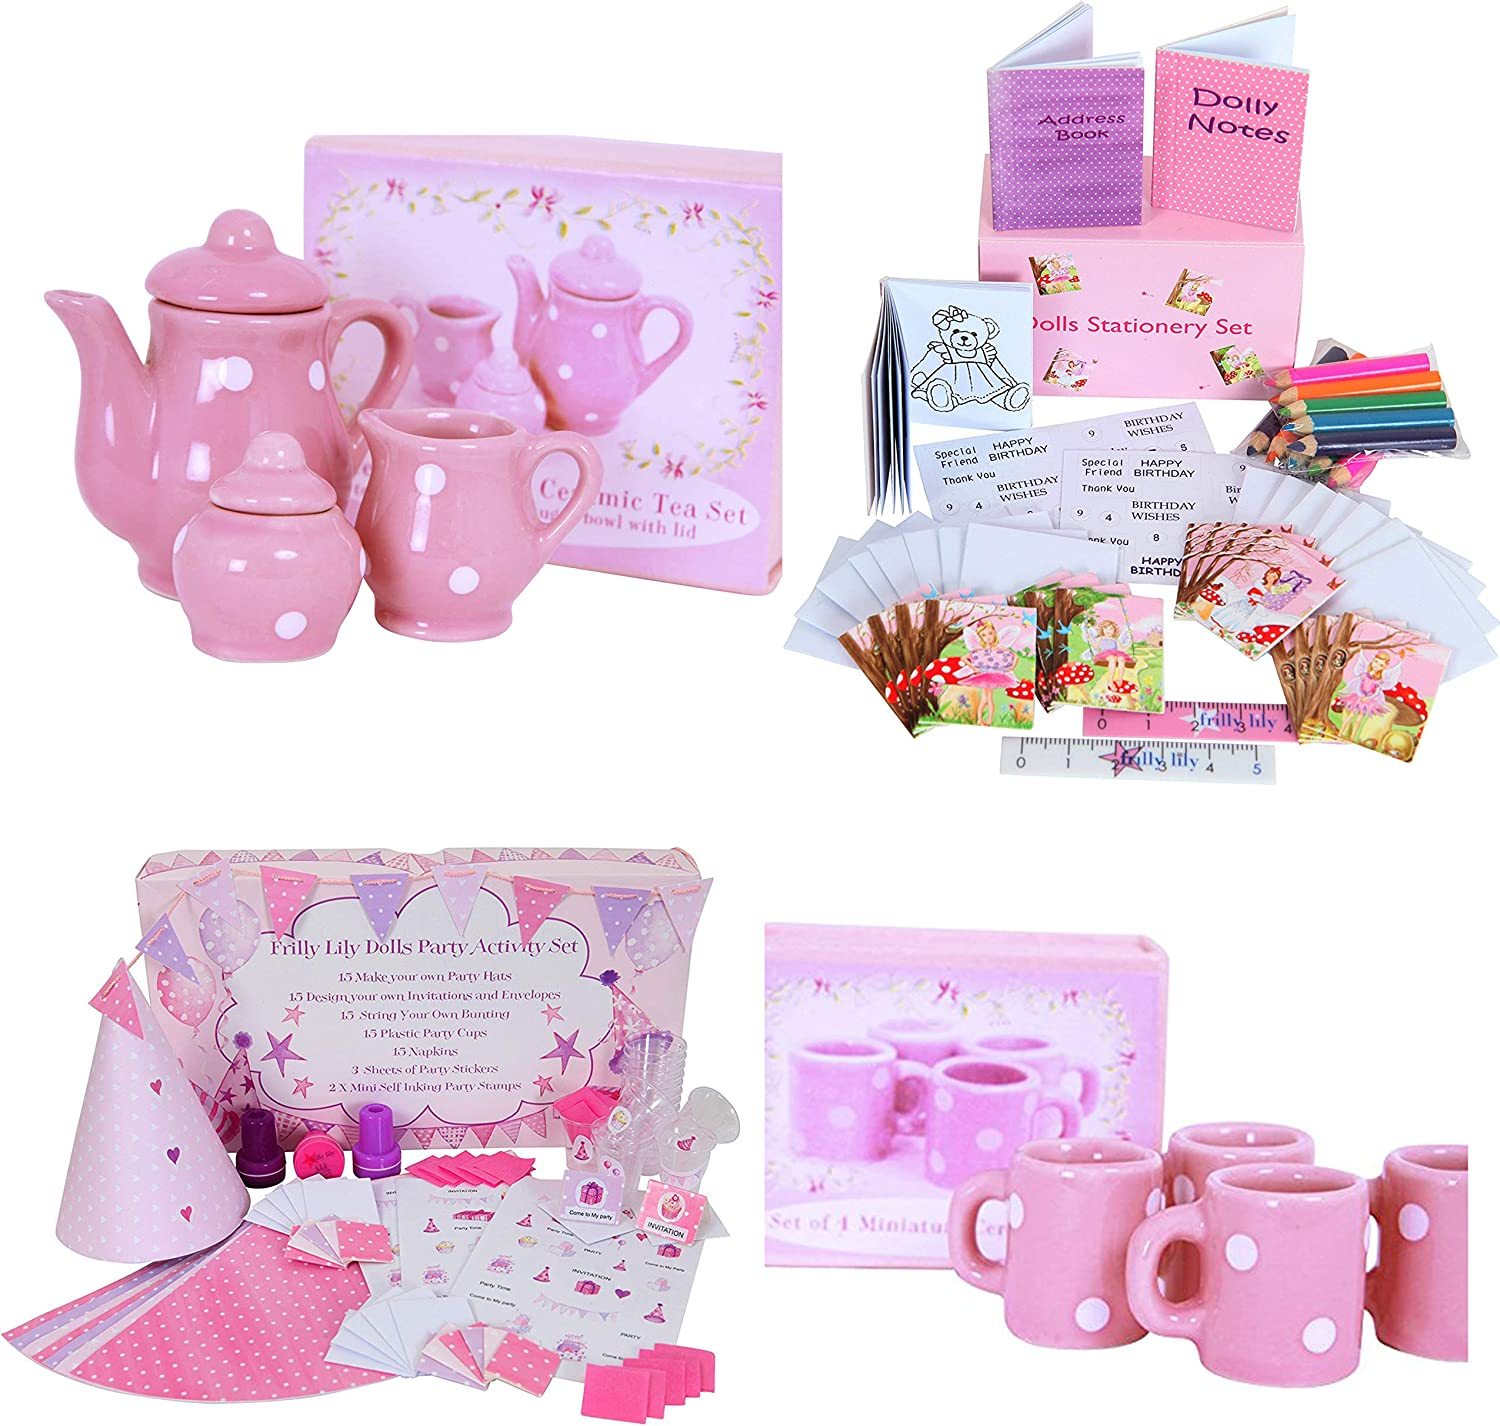 Frilly Lily Dolls Accessory Bundle Suitable For Dolls Such As American Girl Baby Born Hannah By Gotz Designafriend Doll Kidz And Cats Precious Day Doll Happy Kidz Baby Annabell And Many More Dolls Of This Height Amazon Co Uk Toys,Simple Blouse Back Neck Designs Images Free Download